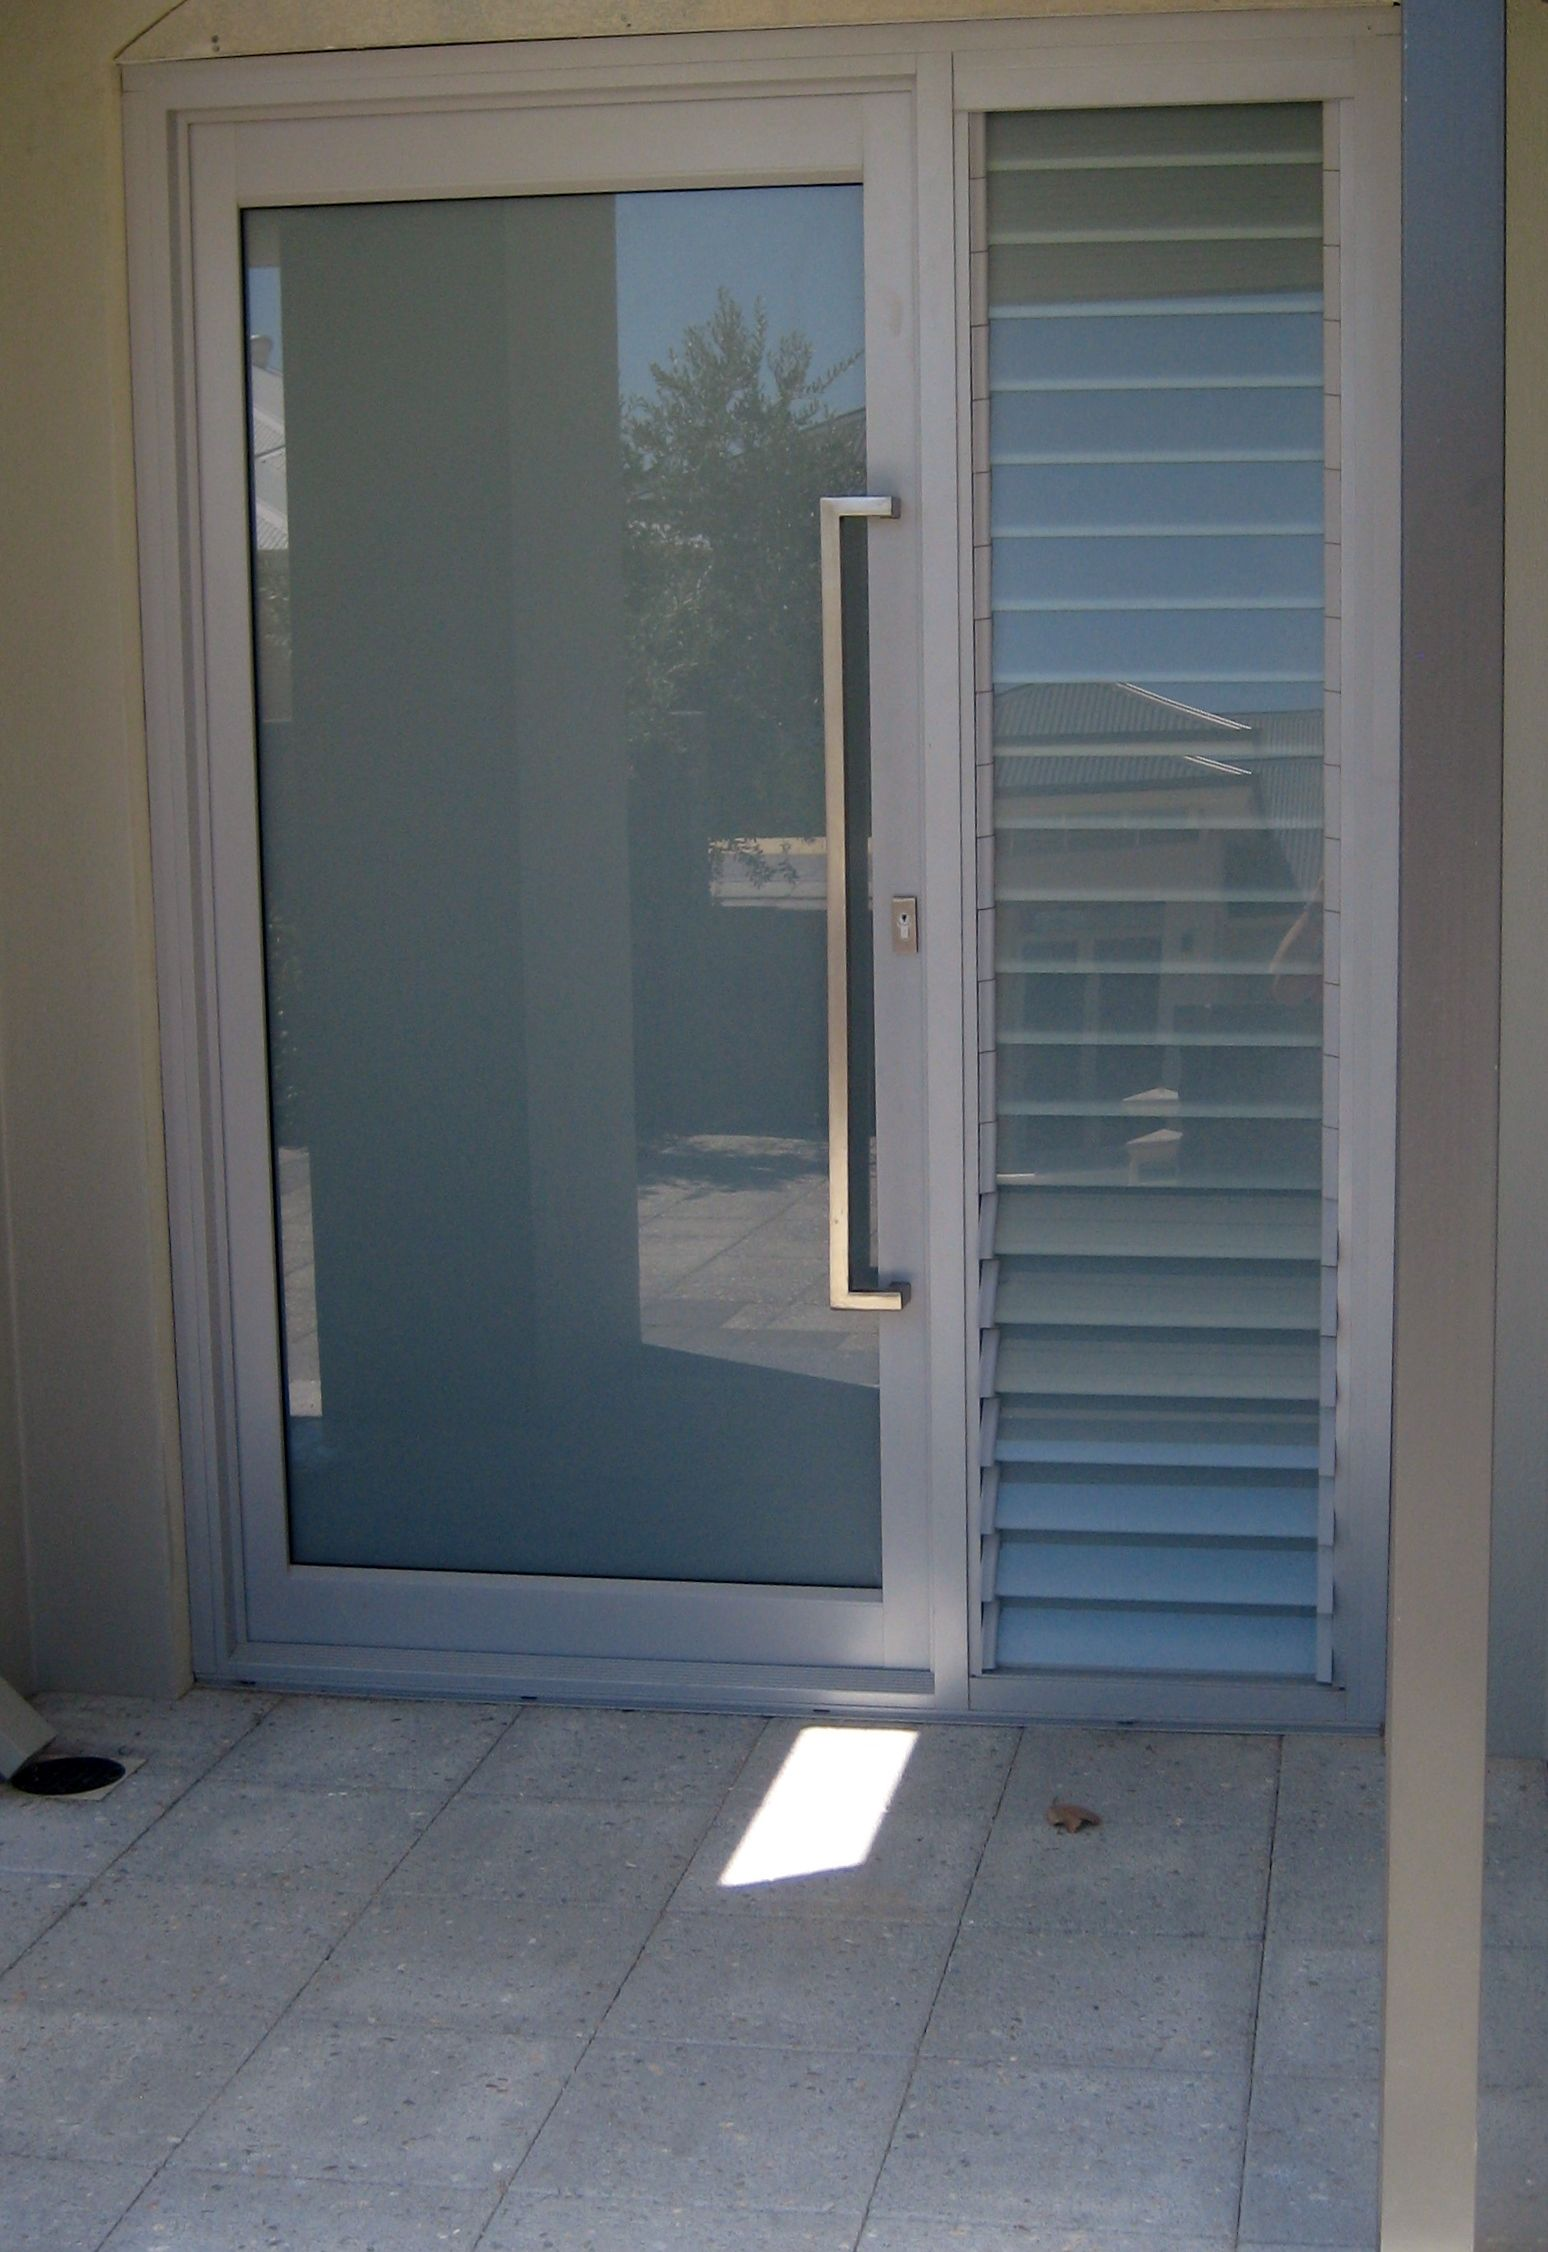 Aluminium Haustür Toronto Aluminium Glass Entry Doors Google Search Study Room Entry